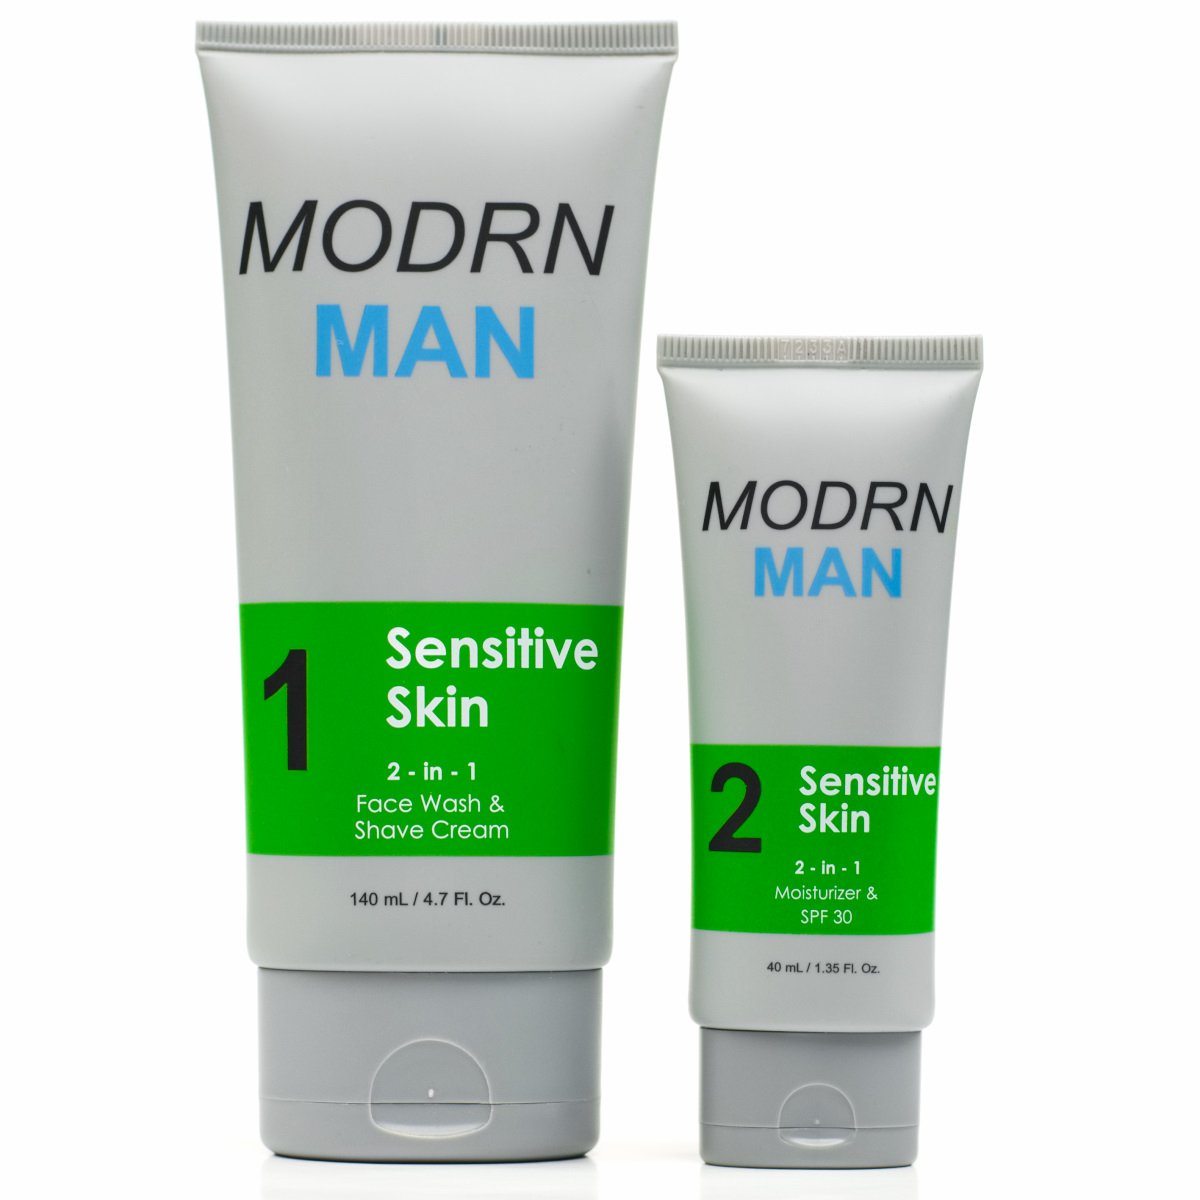 MODRN MAN Face Saving System For Men With Sensitive Skin | 2-in-1 Men's Face Wash & Shaving Cream | All-in-One Men's Face Moisturizer with SPF | Fragrance Free | 45 Day Supply